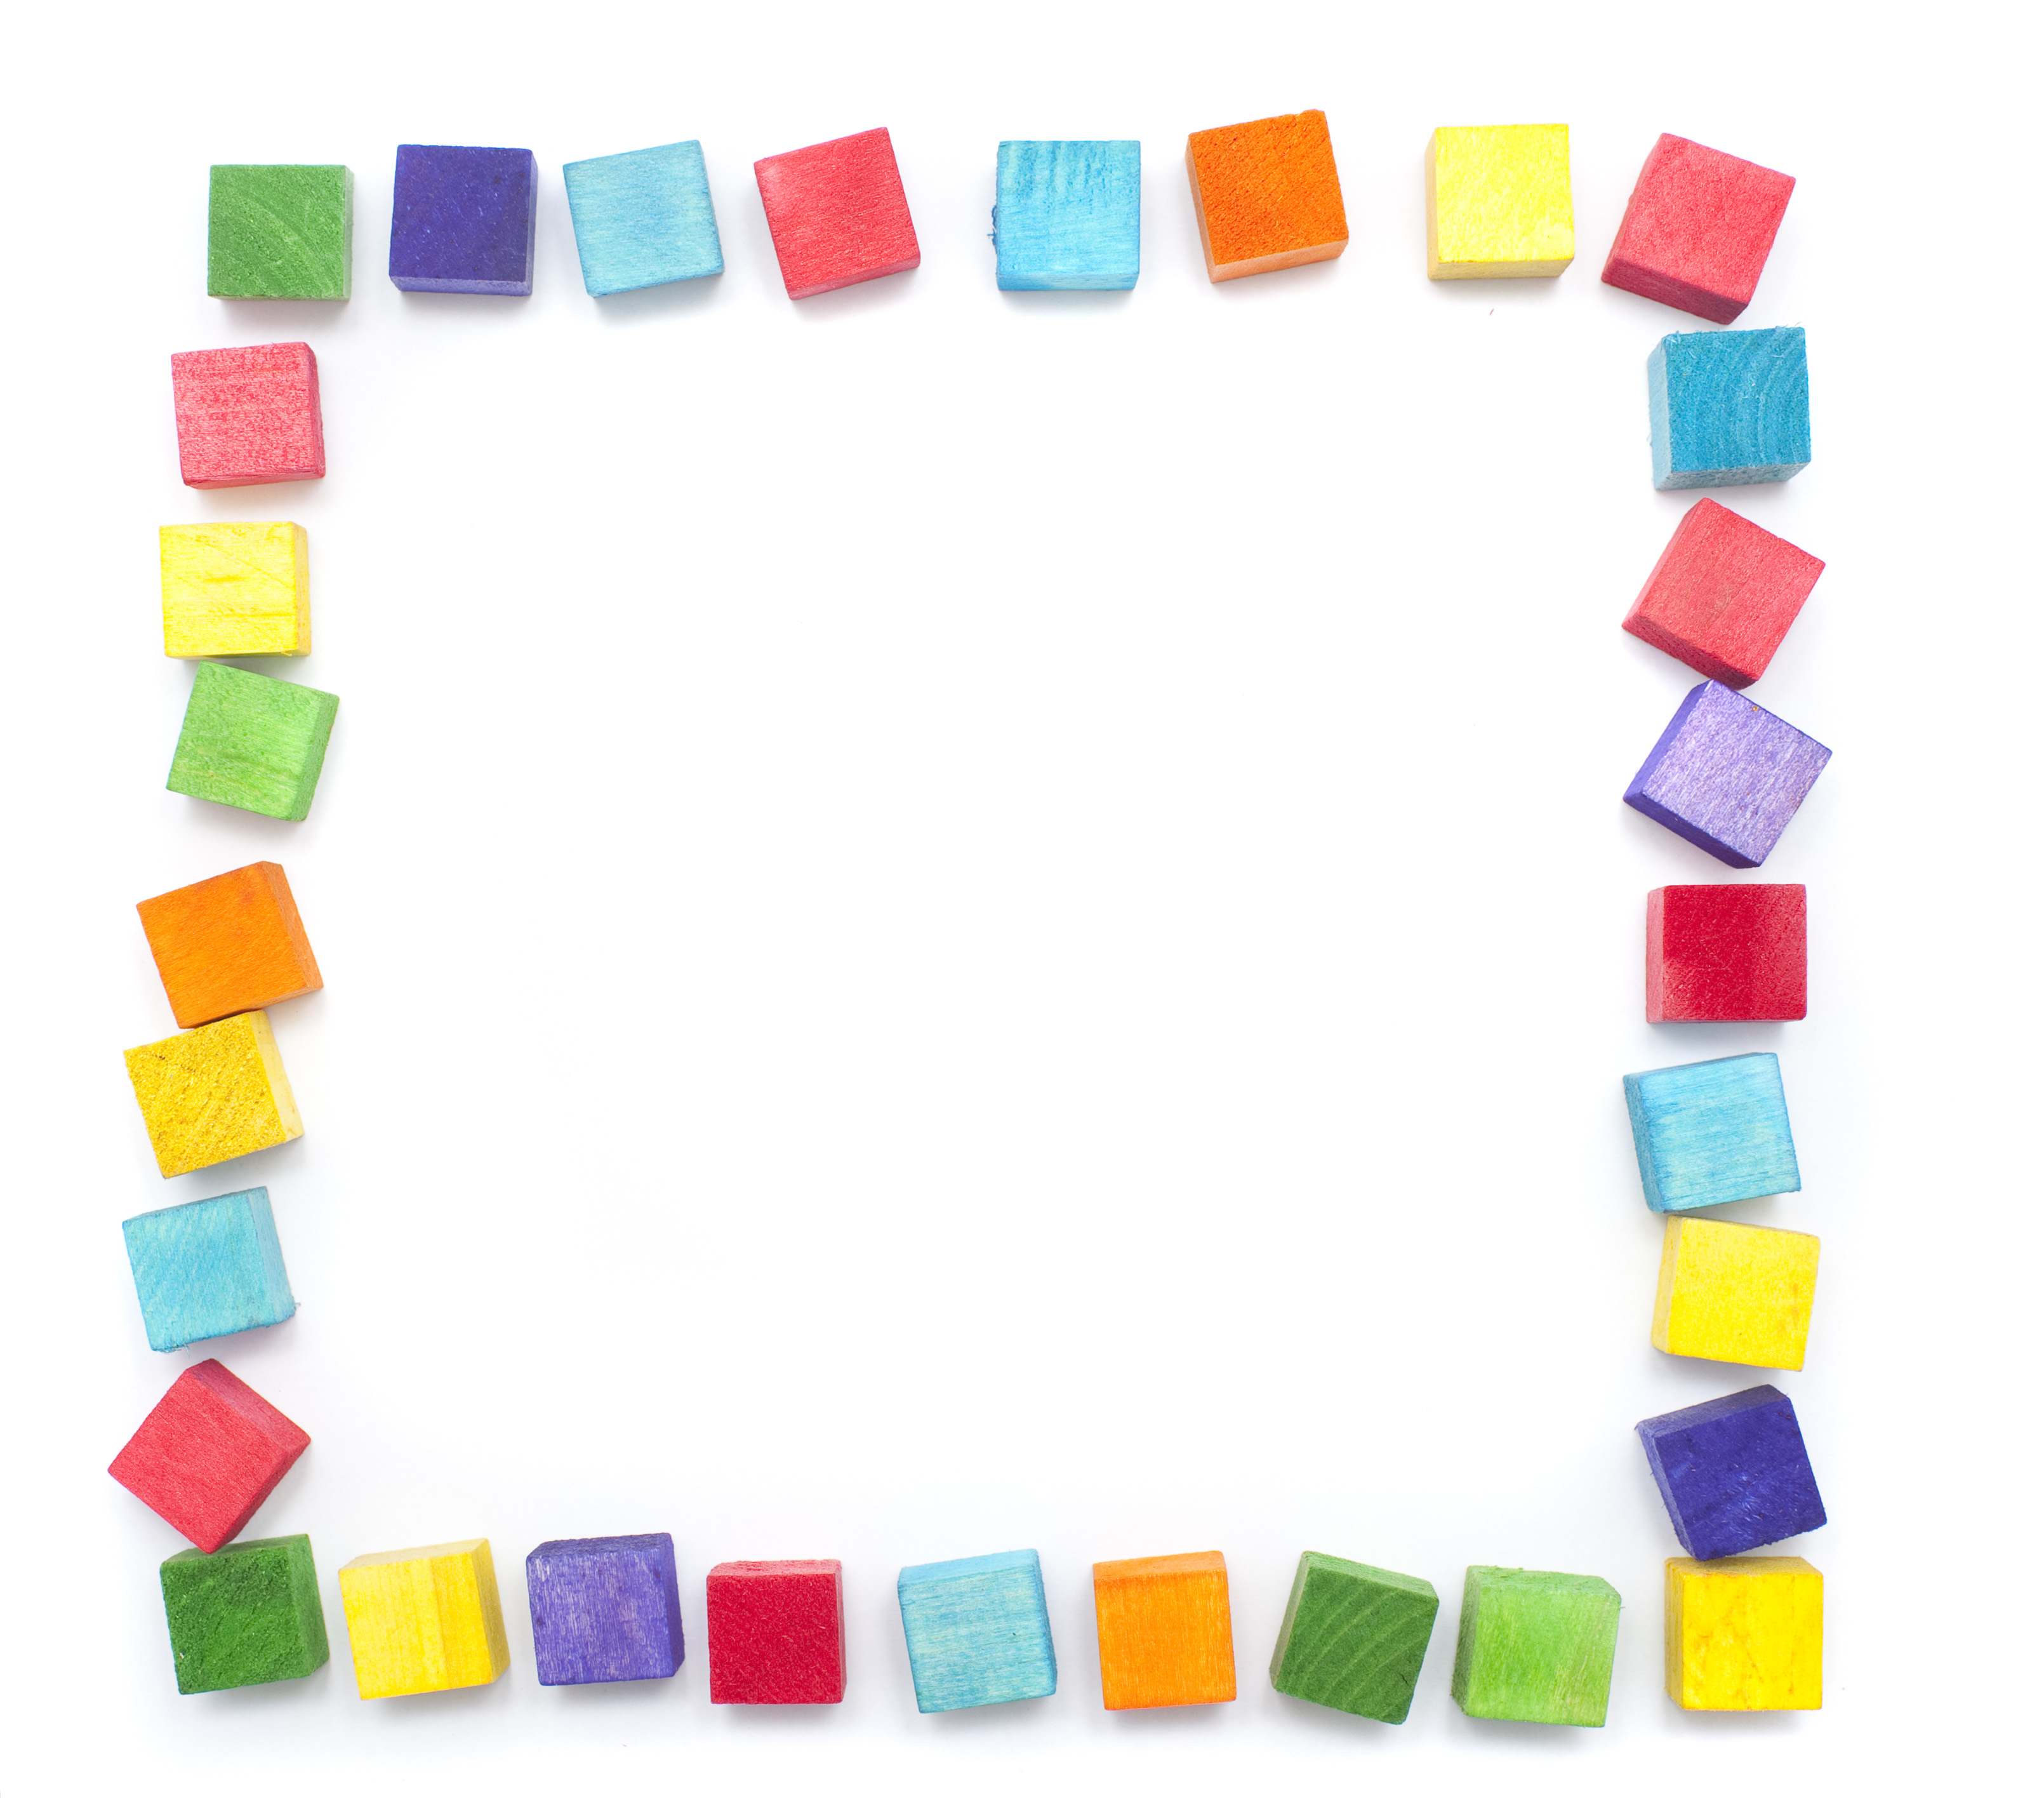 Free image of Colorful square wooden toy block border on white